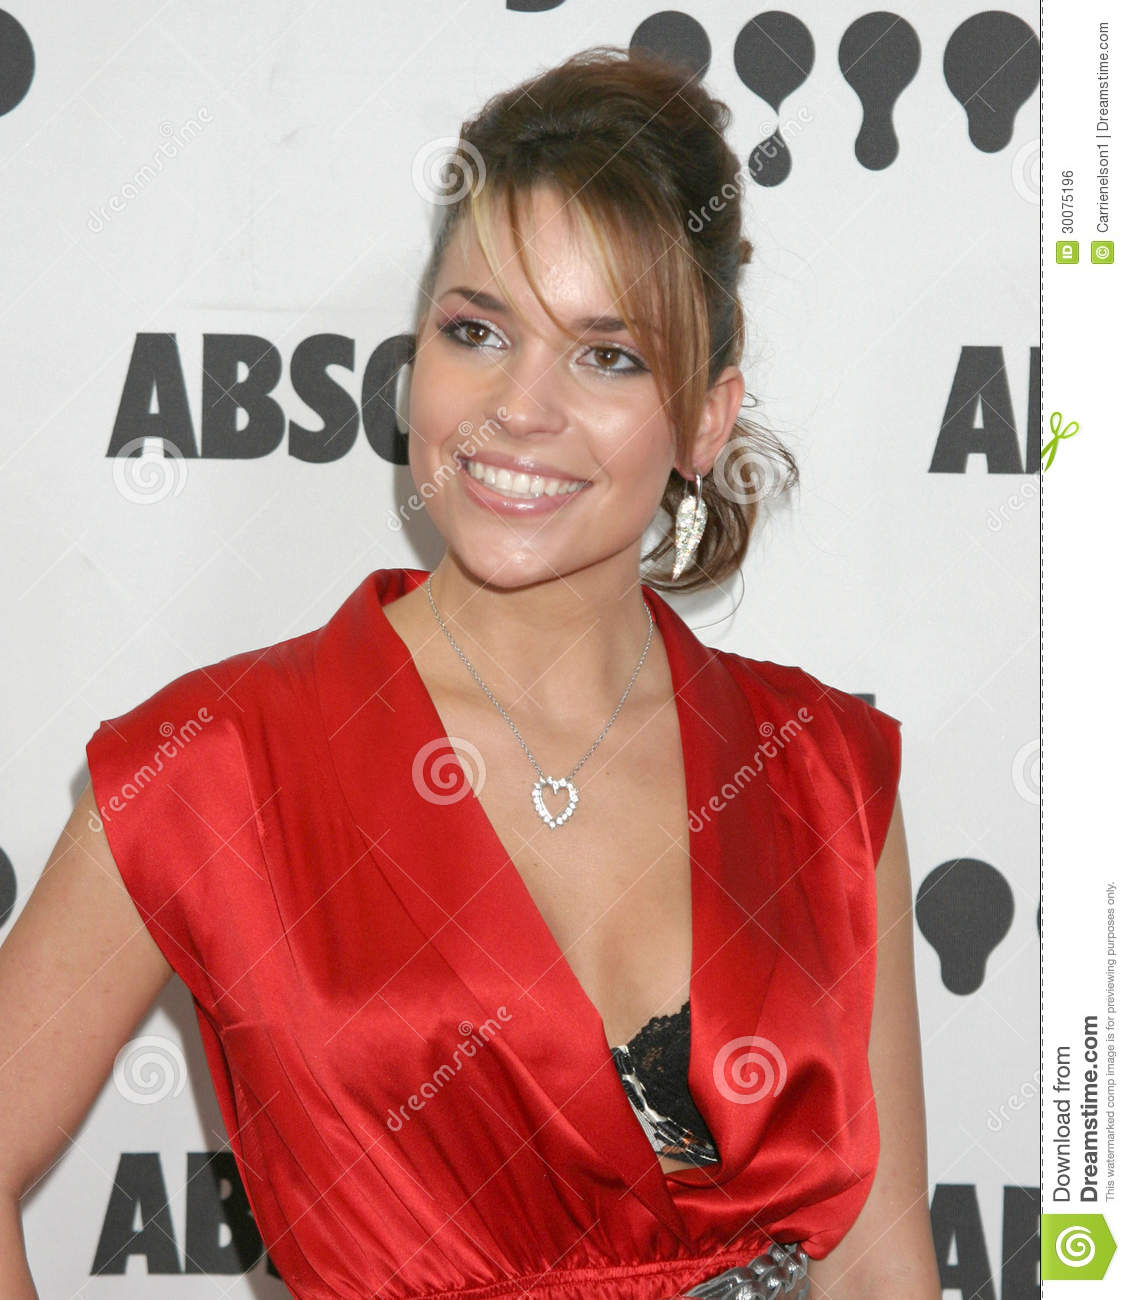 Mandy Musgrave songs